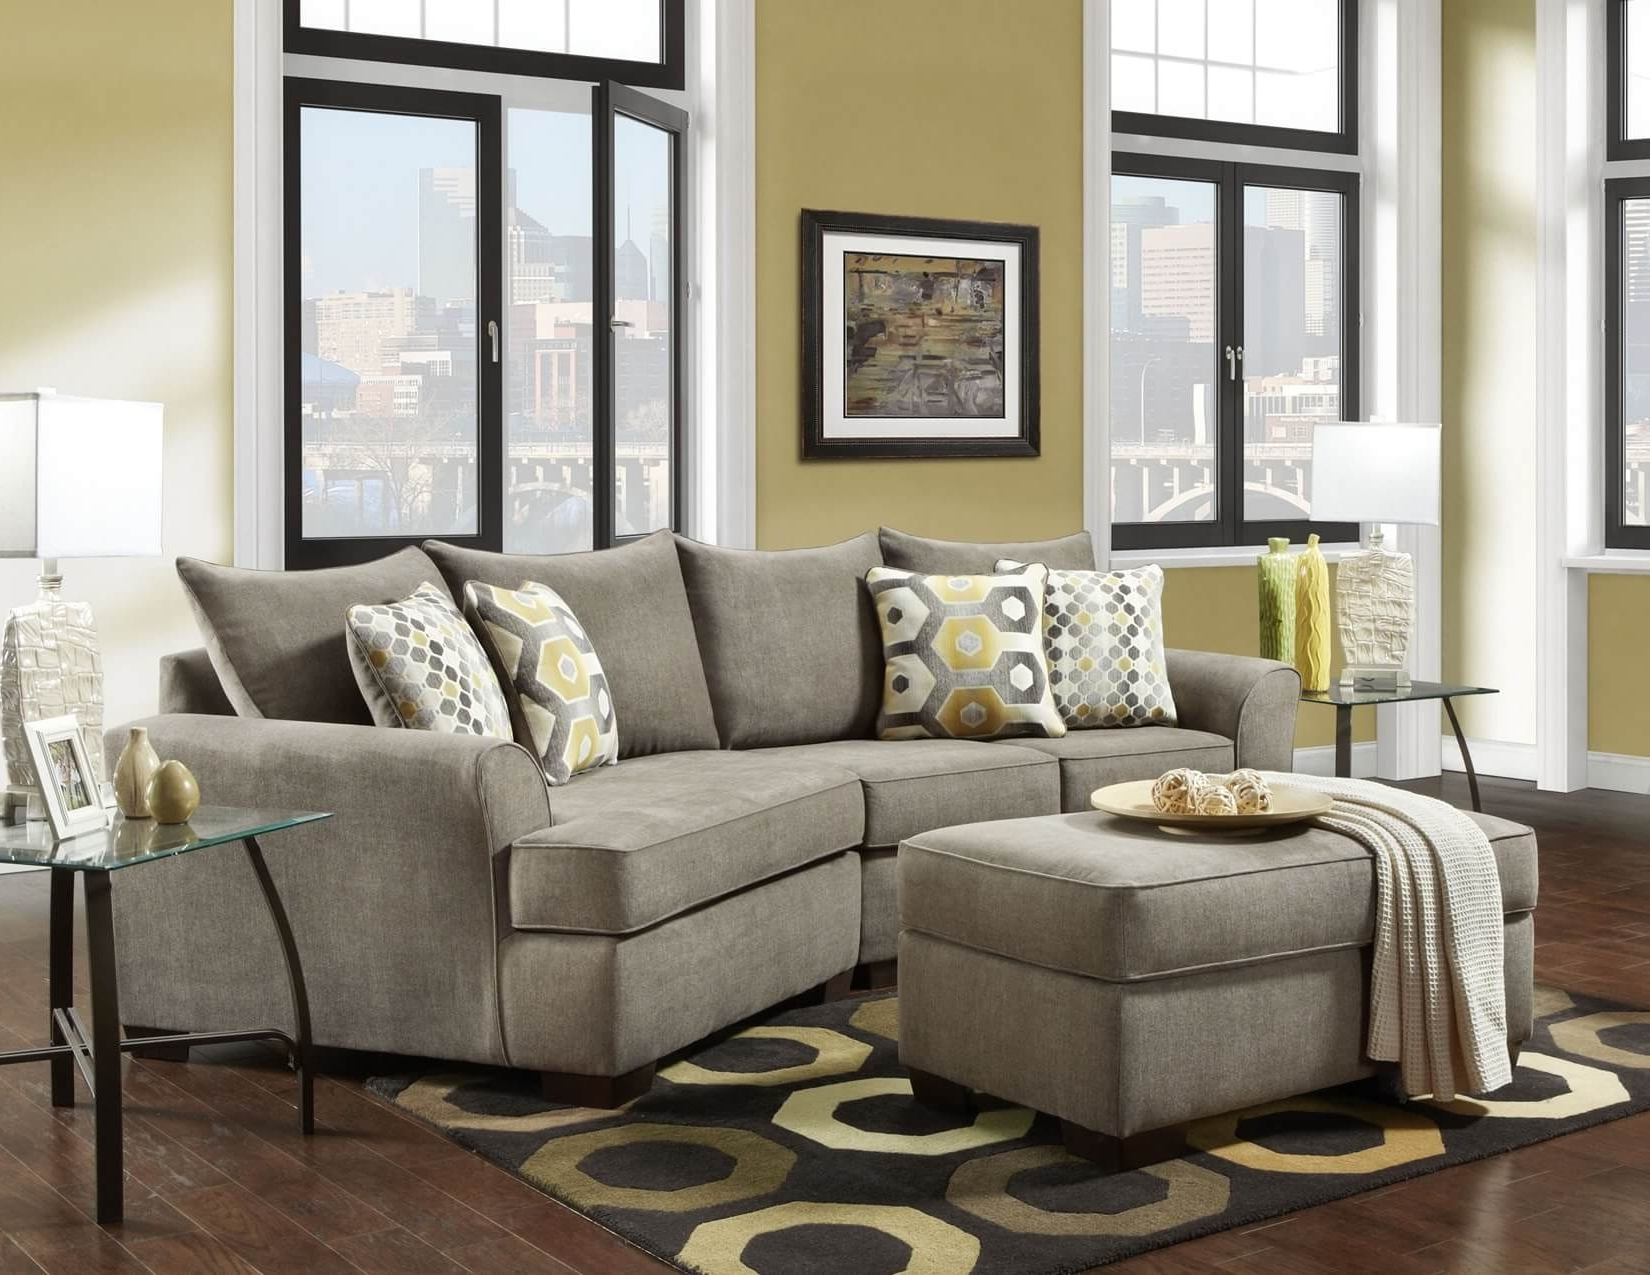 Sectional Sofa Sets (View 11 of 20)